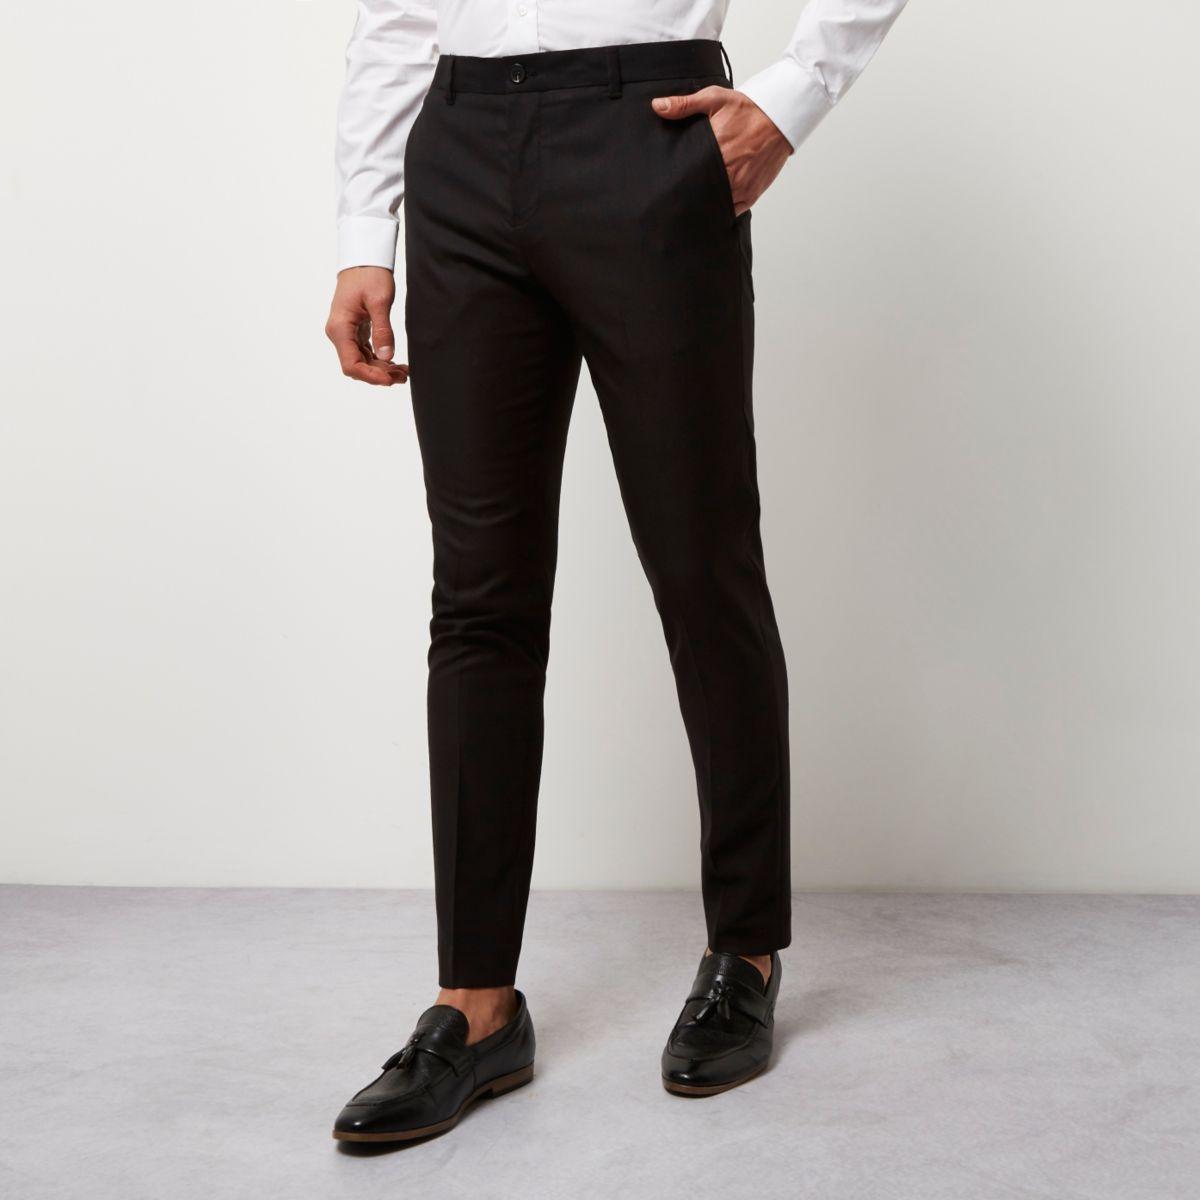 Black skinny smart pants